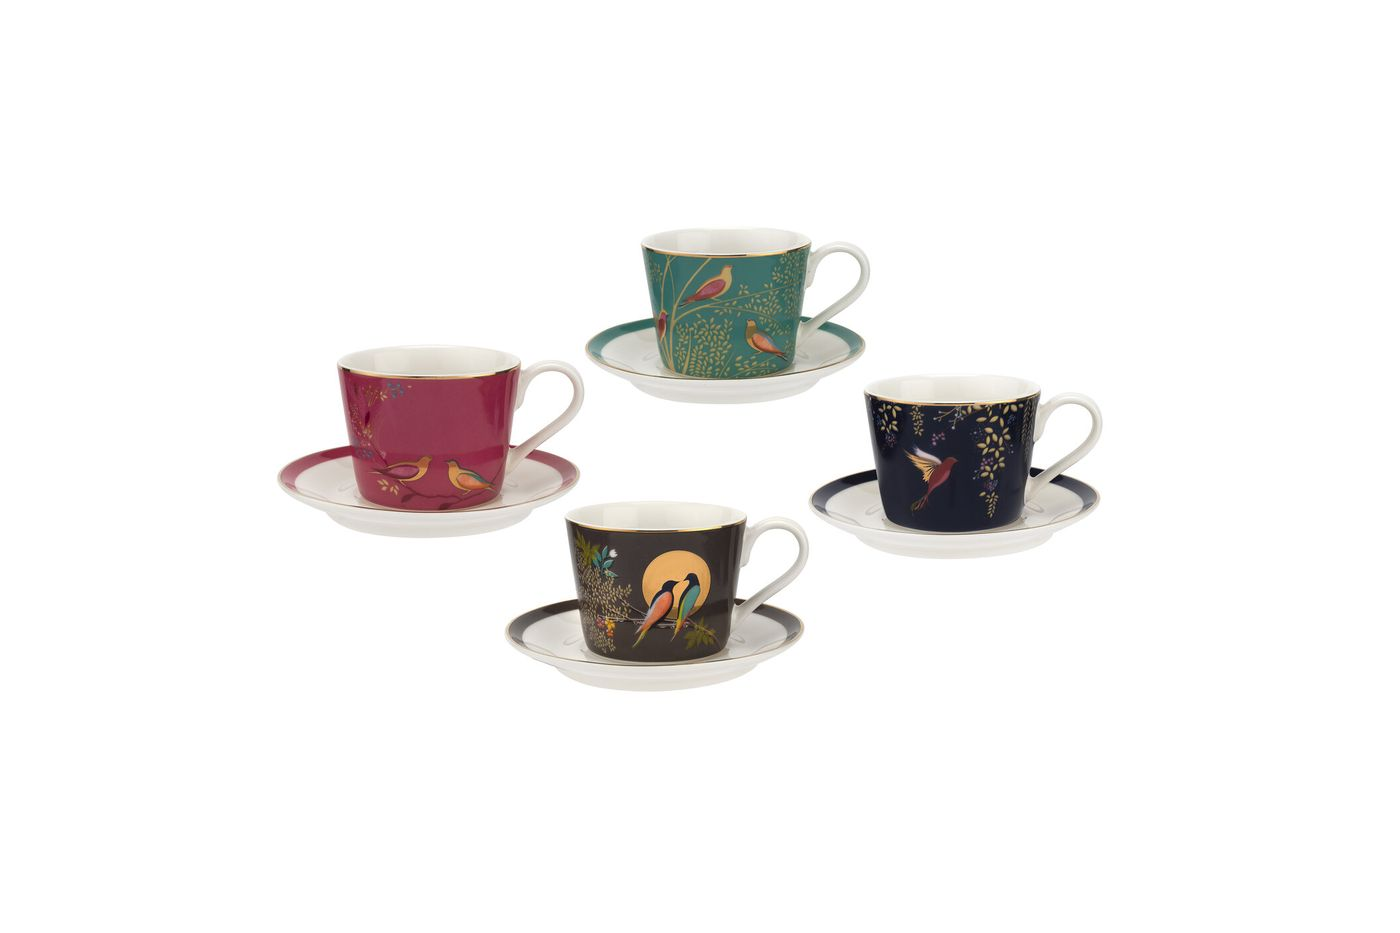 Sara Miller London for Portmeirion Chelsea Collection Espresso Cup & Saucer - Set of 4 0.11l thumb 1